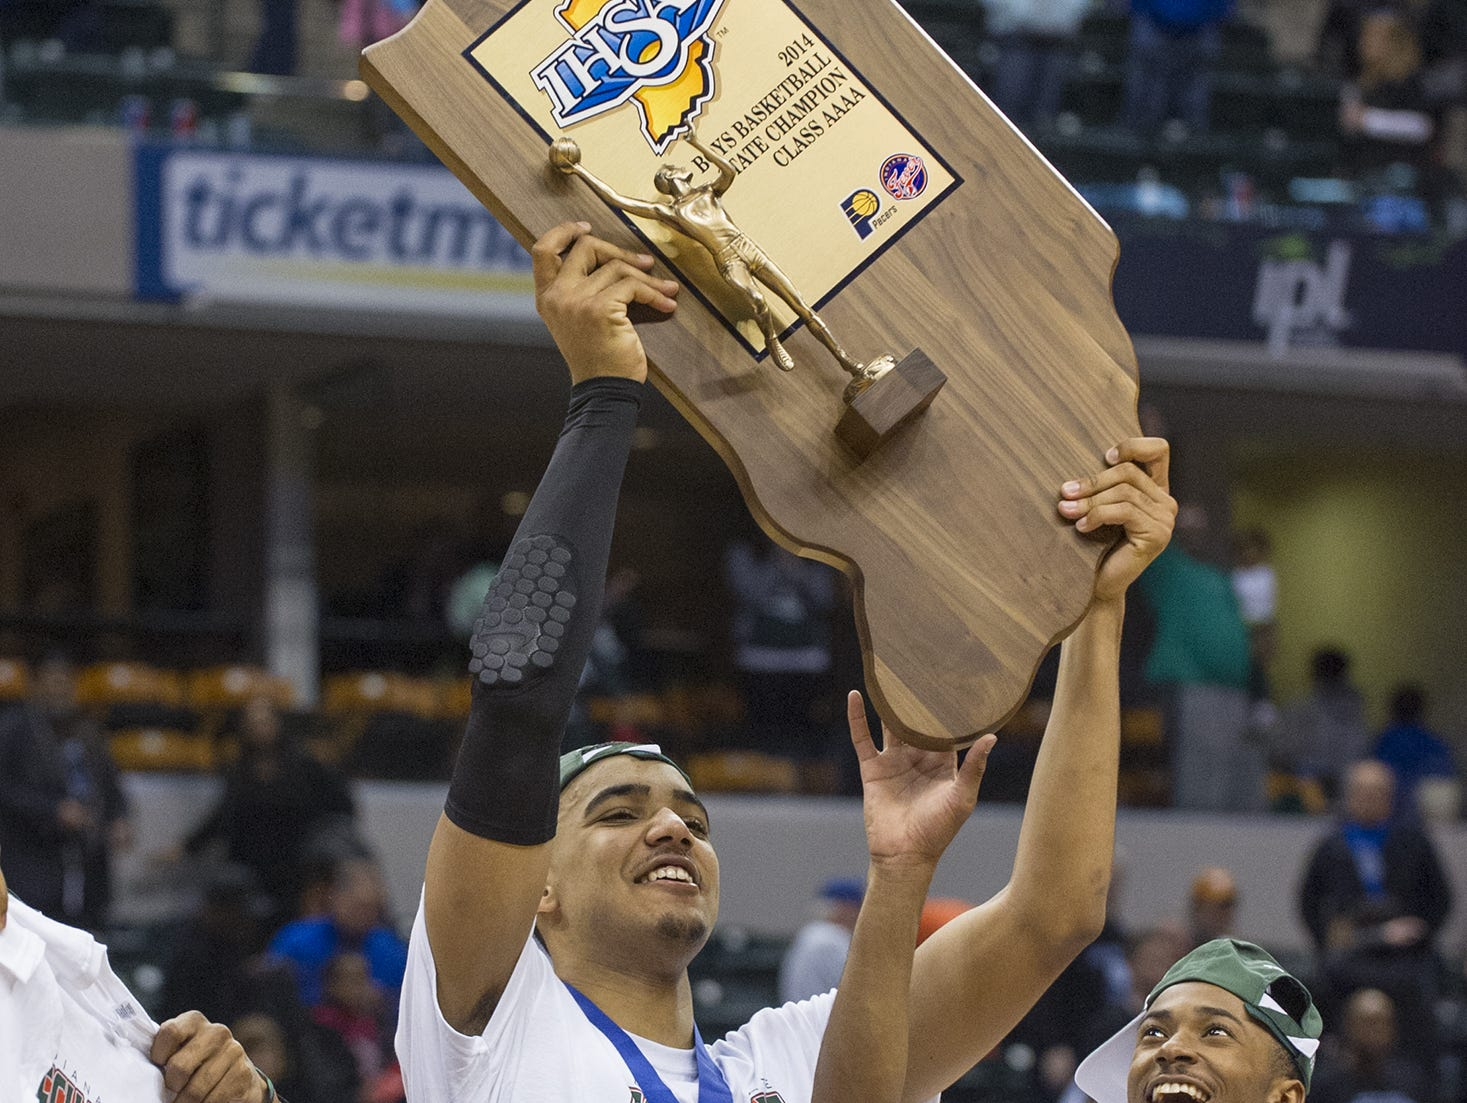 FILE – Tech's Trey Lyles (41) holds up the team's State Championship trophy after winning the IHSAA Boys Basketball 4A State Finals at Bankers Life Fieldhouse, March 29, 2014.